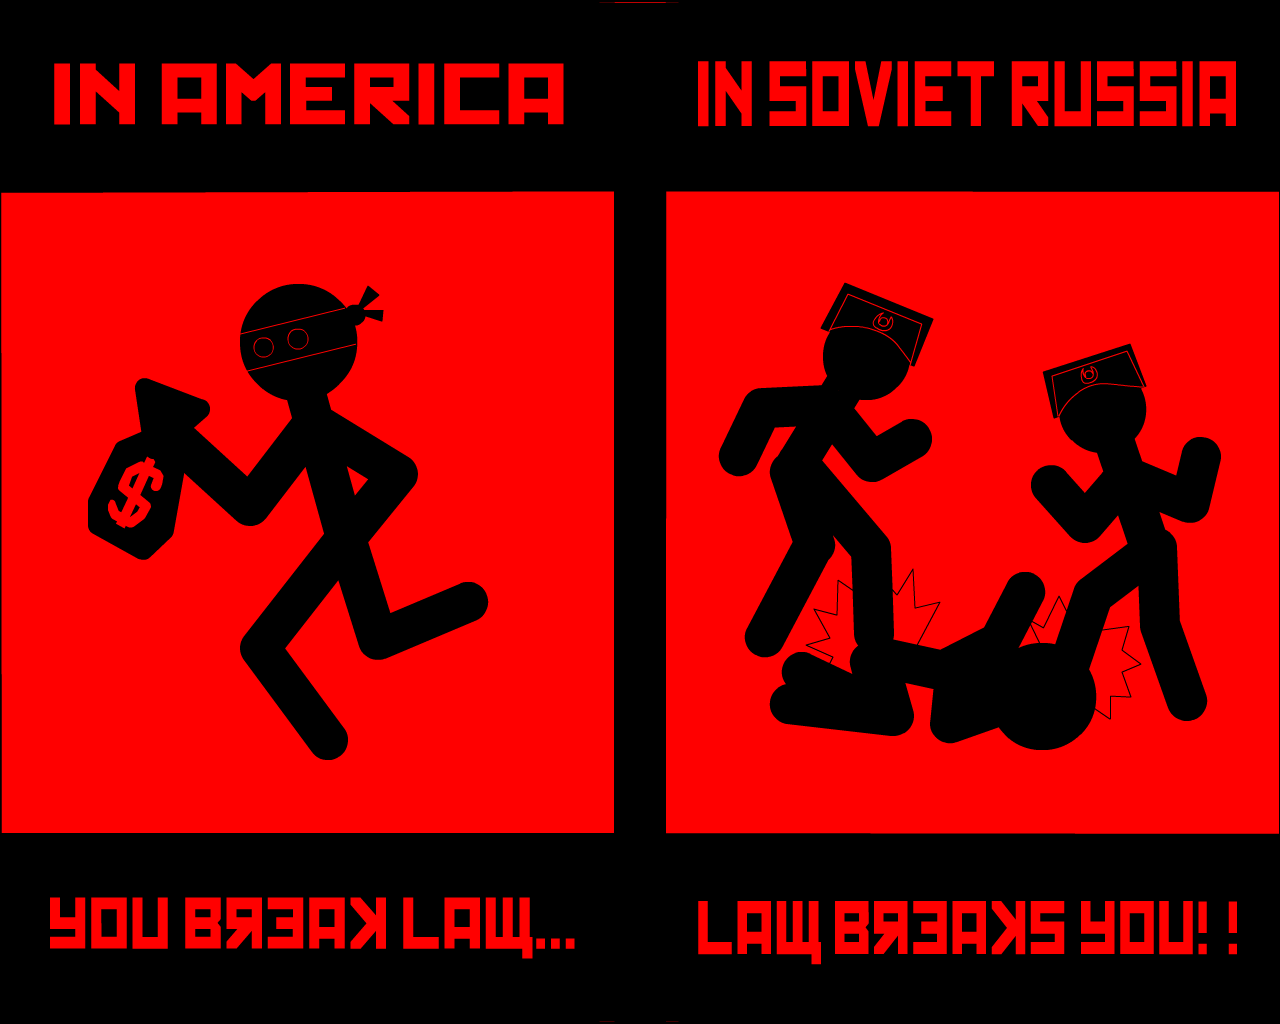 Random Images Soviet Russia Jokes HD Wallpaper And Background Photos